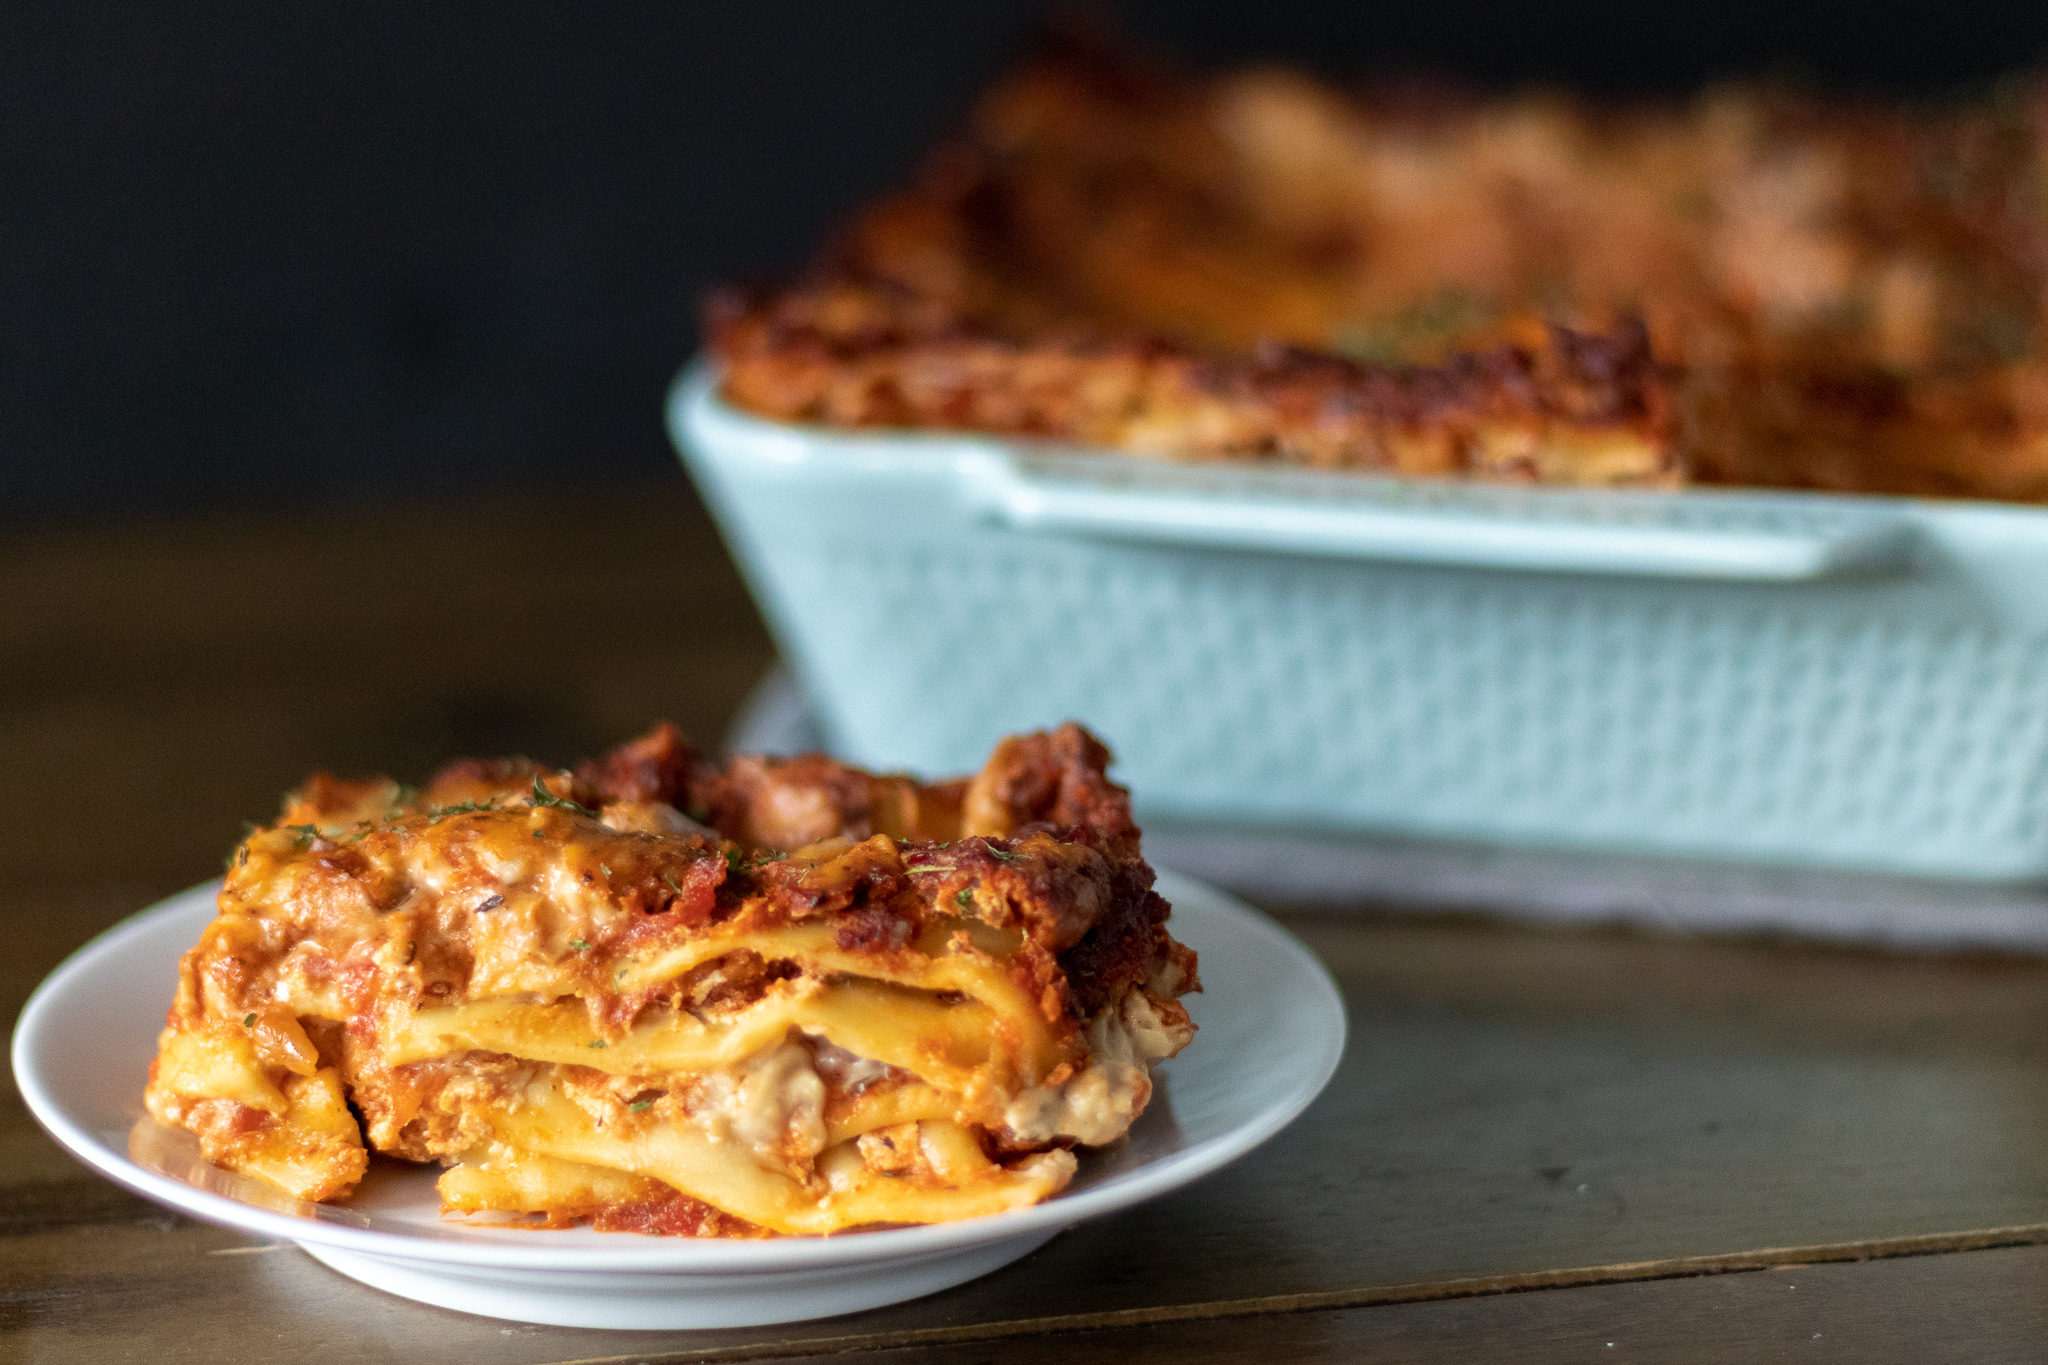 """If you have been looking for the perfect, cheesy, gooey, saucy, vegan lasagna, look no further! Layers of noodles, tofu ricotta, homemade marinara, and the perfect vegan mozzarella sauce make this lasagna the best vegan lasagna I have had, hands down! It's my go to dish to bake up for all of our non vegan friends and family, because no one ever even knows its vegan! We are house divided where lasagna is concerned, some preferring veggie lasagna, and others a classic """"meaty"""" lasagna. So I have given instruction on making this lasagna 2 ways! Because two kinds of lasagna are always better than one!! Right?!?!? If you are looking for a mini version that is perfect for meal prep, check out the links below for our  Muffin cup lasagna , and our  Lasagna stuffed peppers !!"""